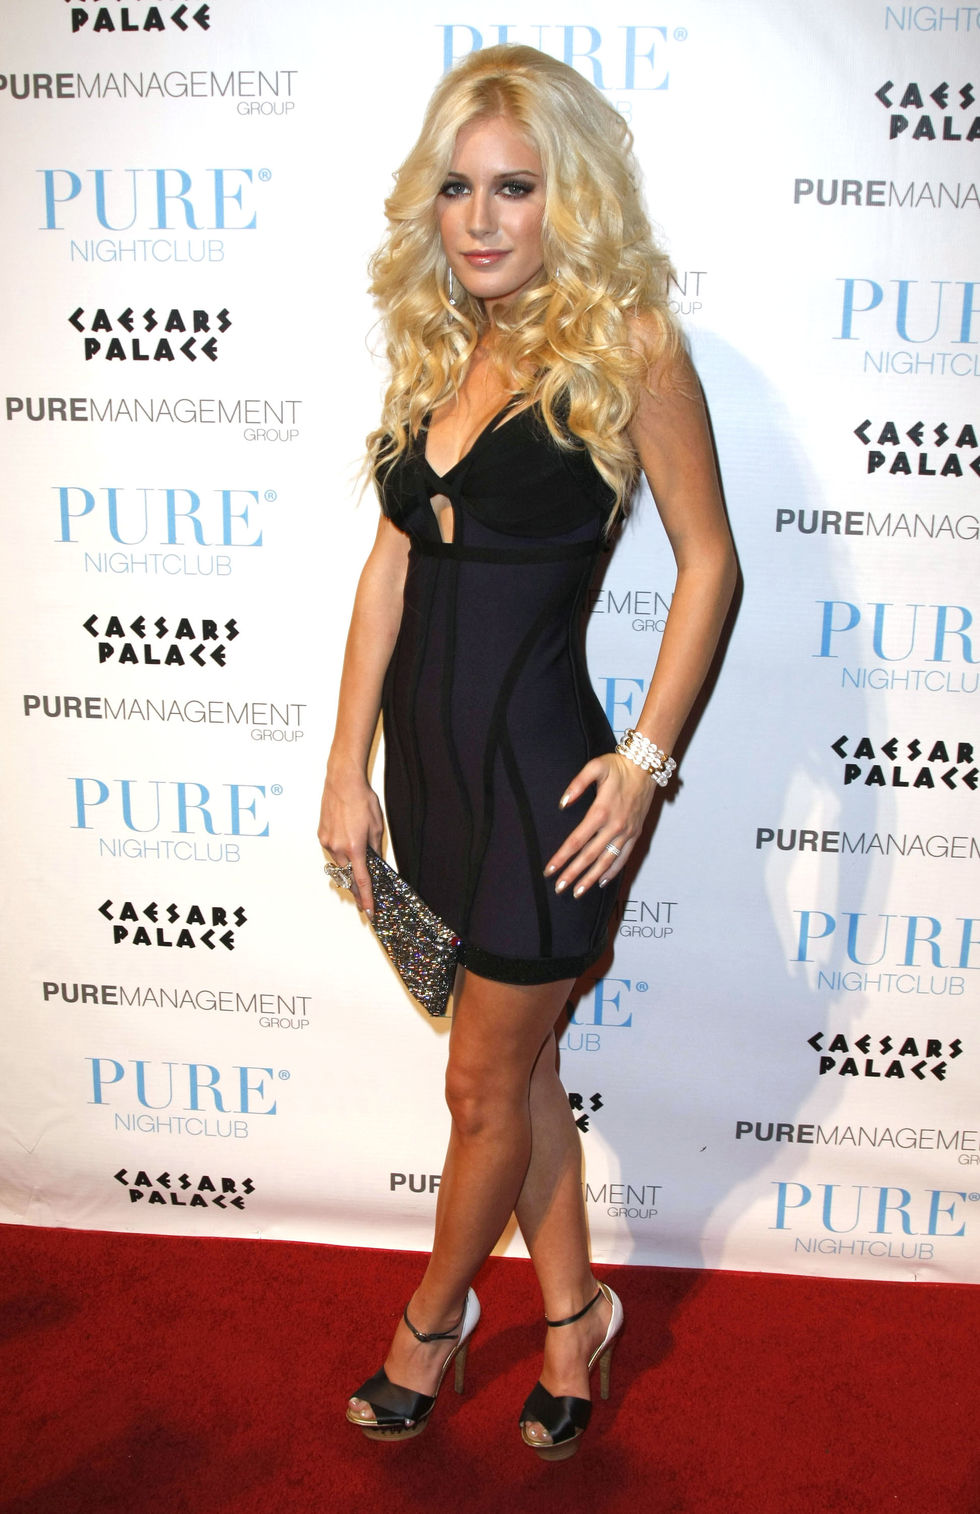 heidi-montag-purefection-at-pure-nightclub-in-las-vegas-06